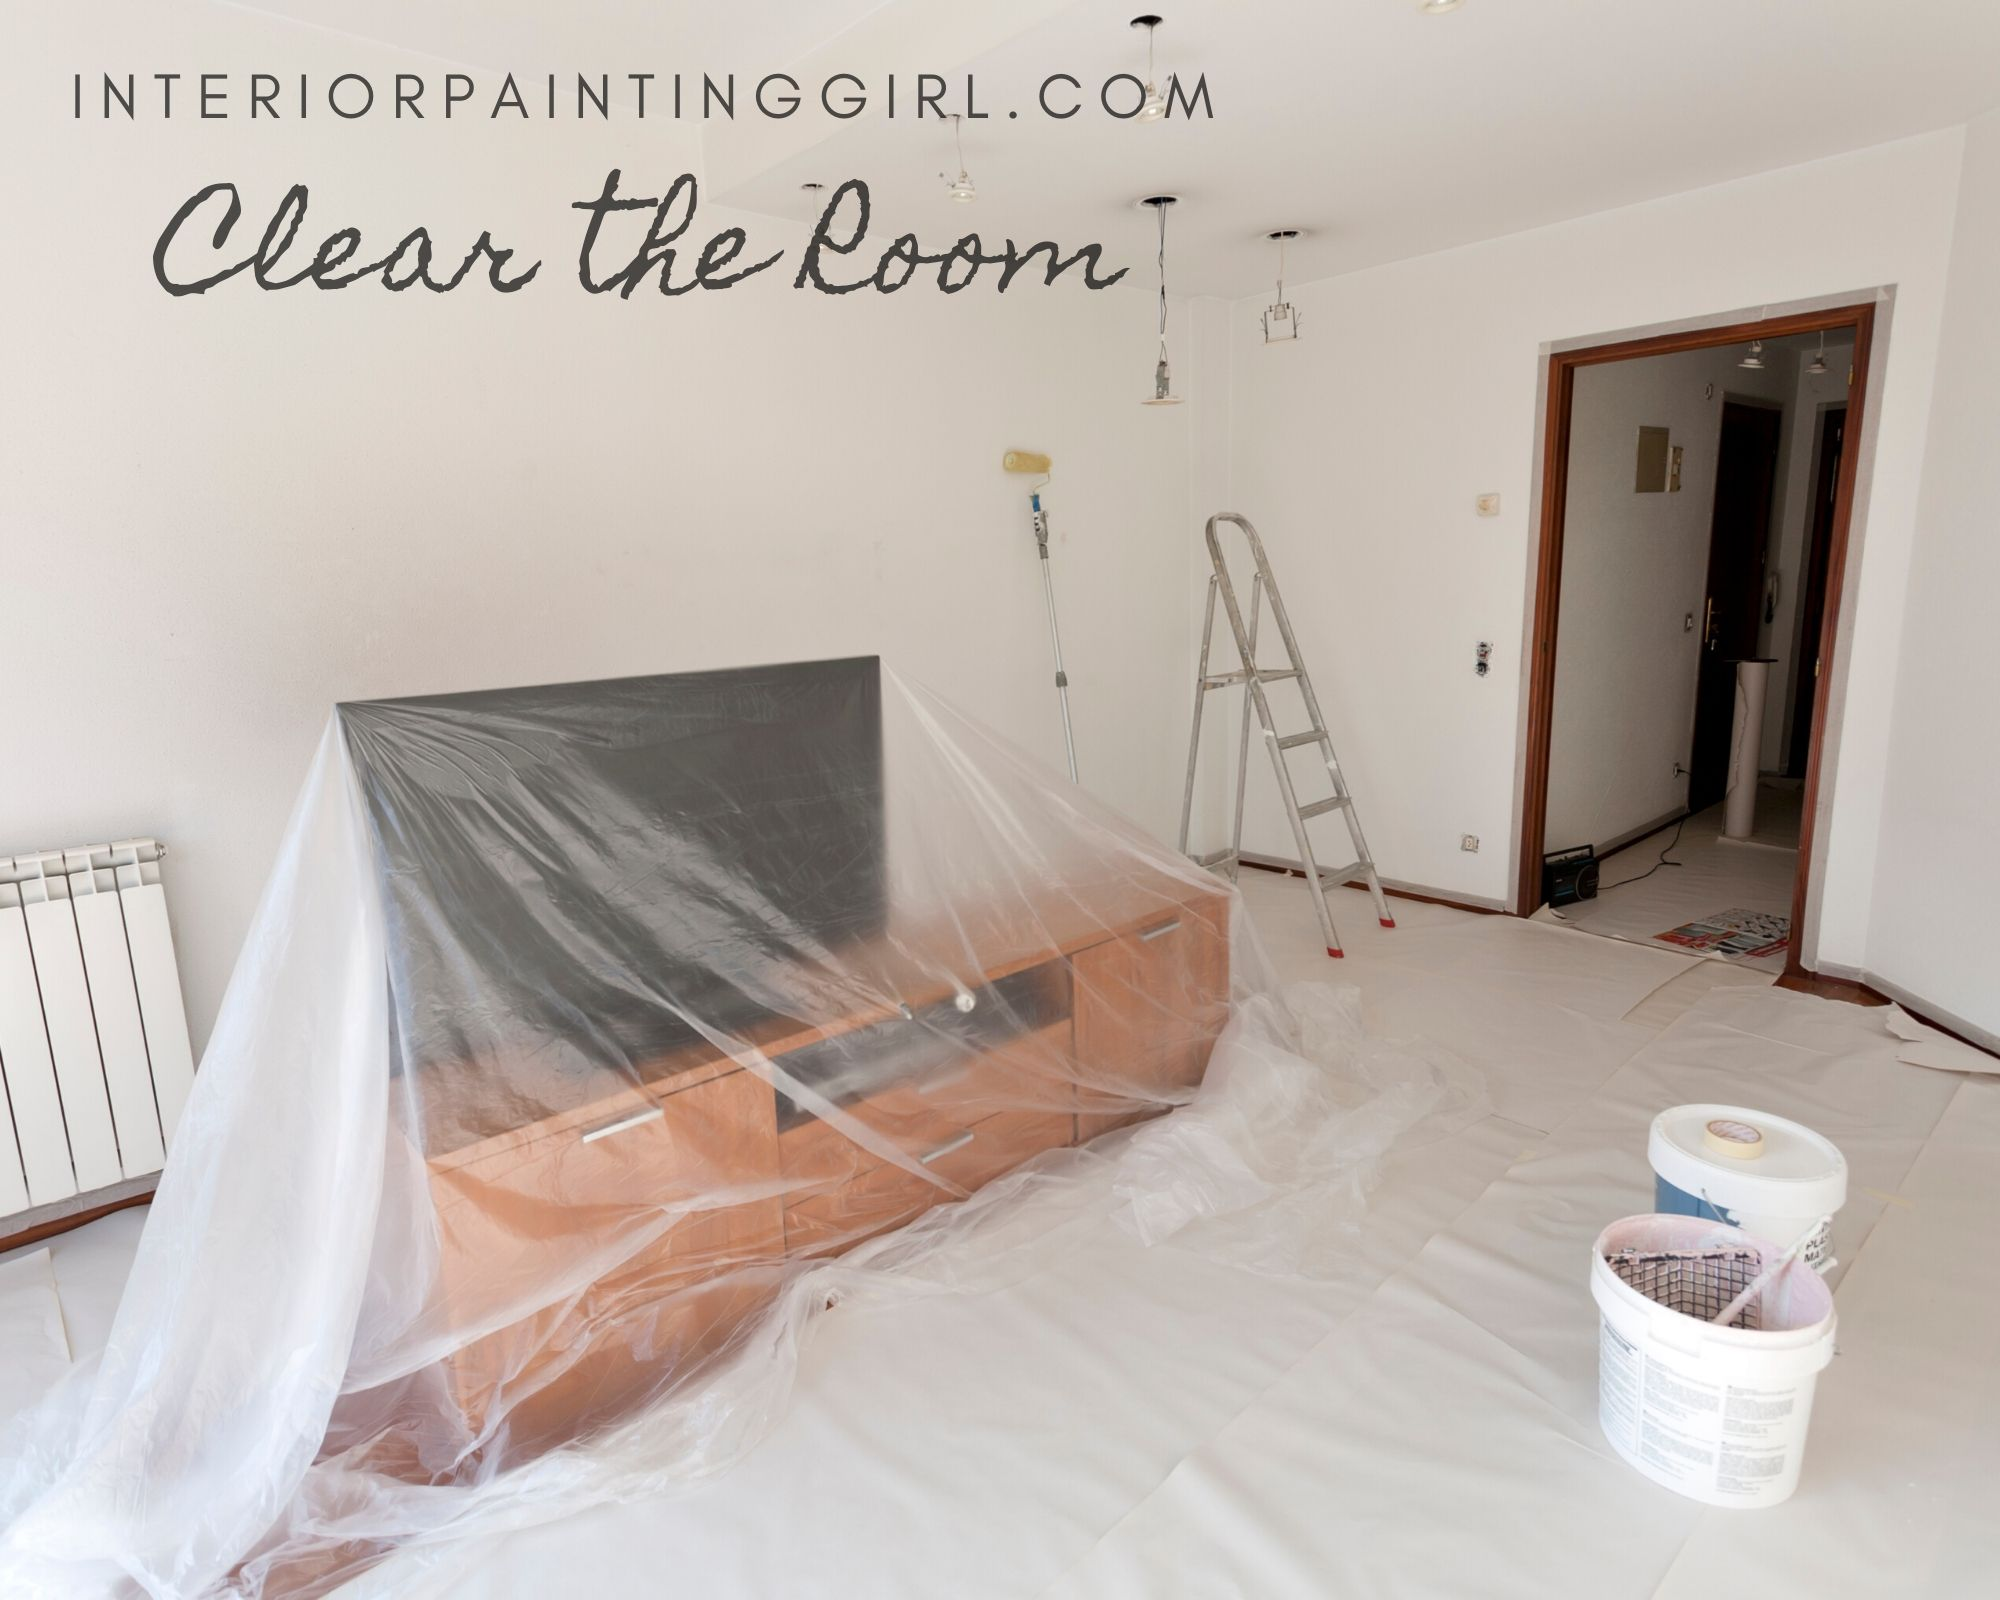 Professional interior painting tips from That Interior Painting Girl!